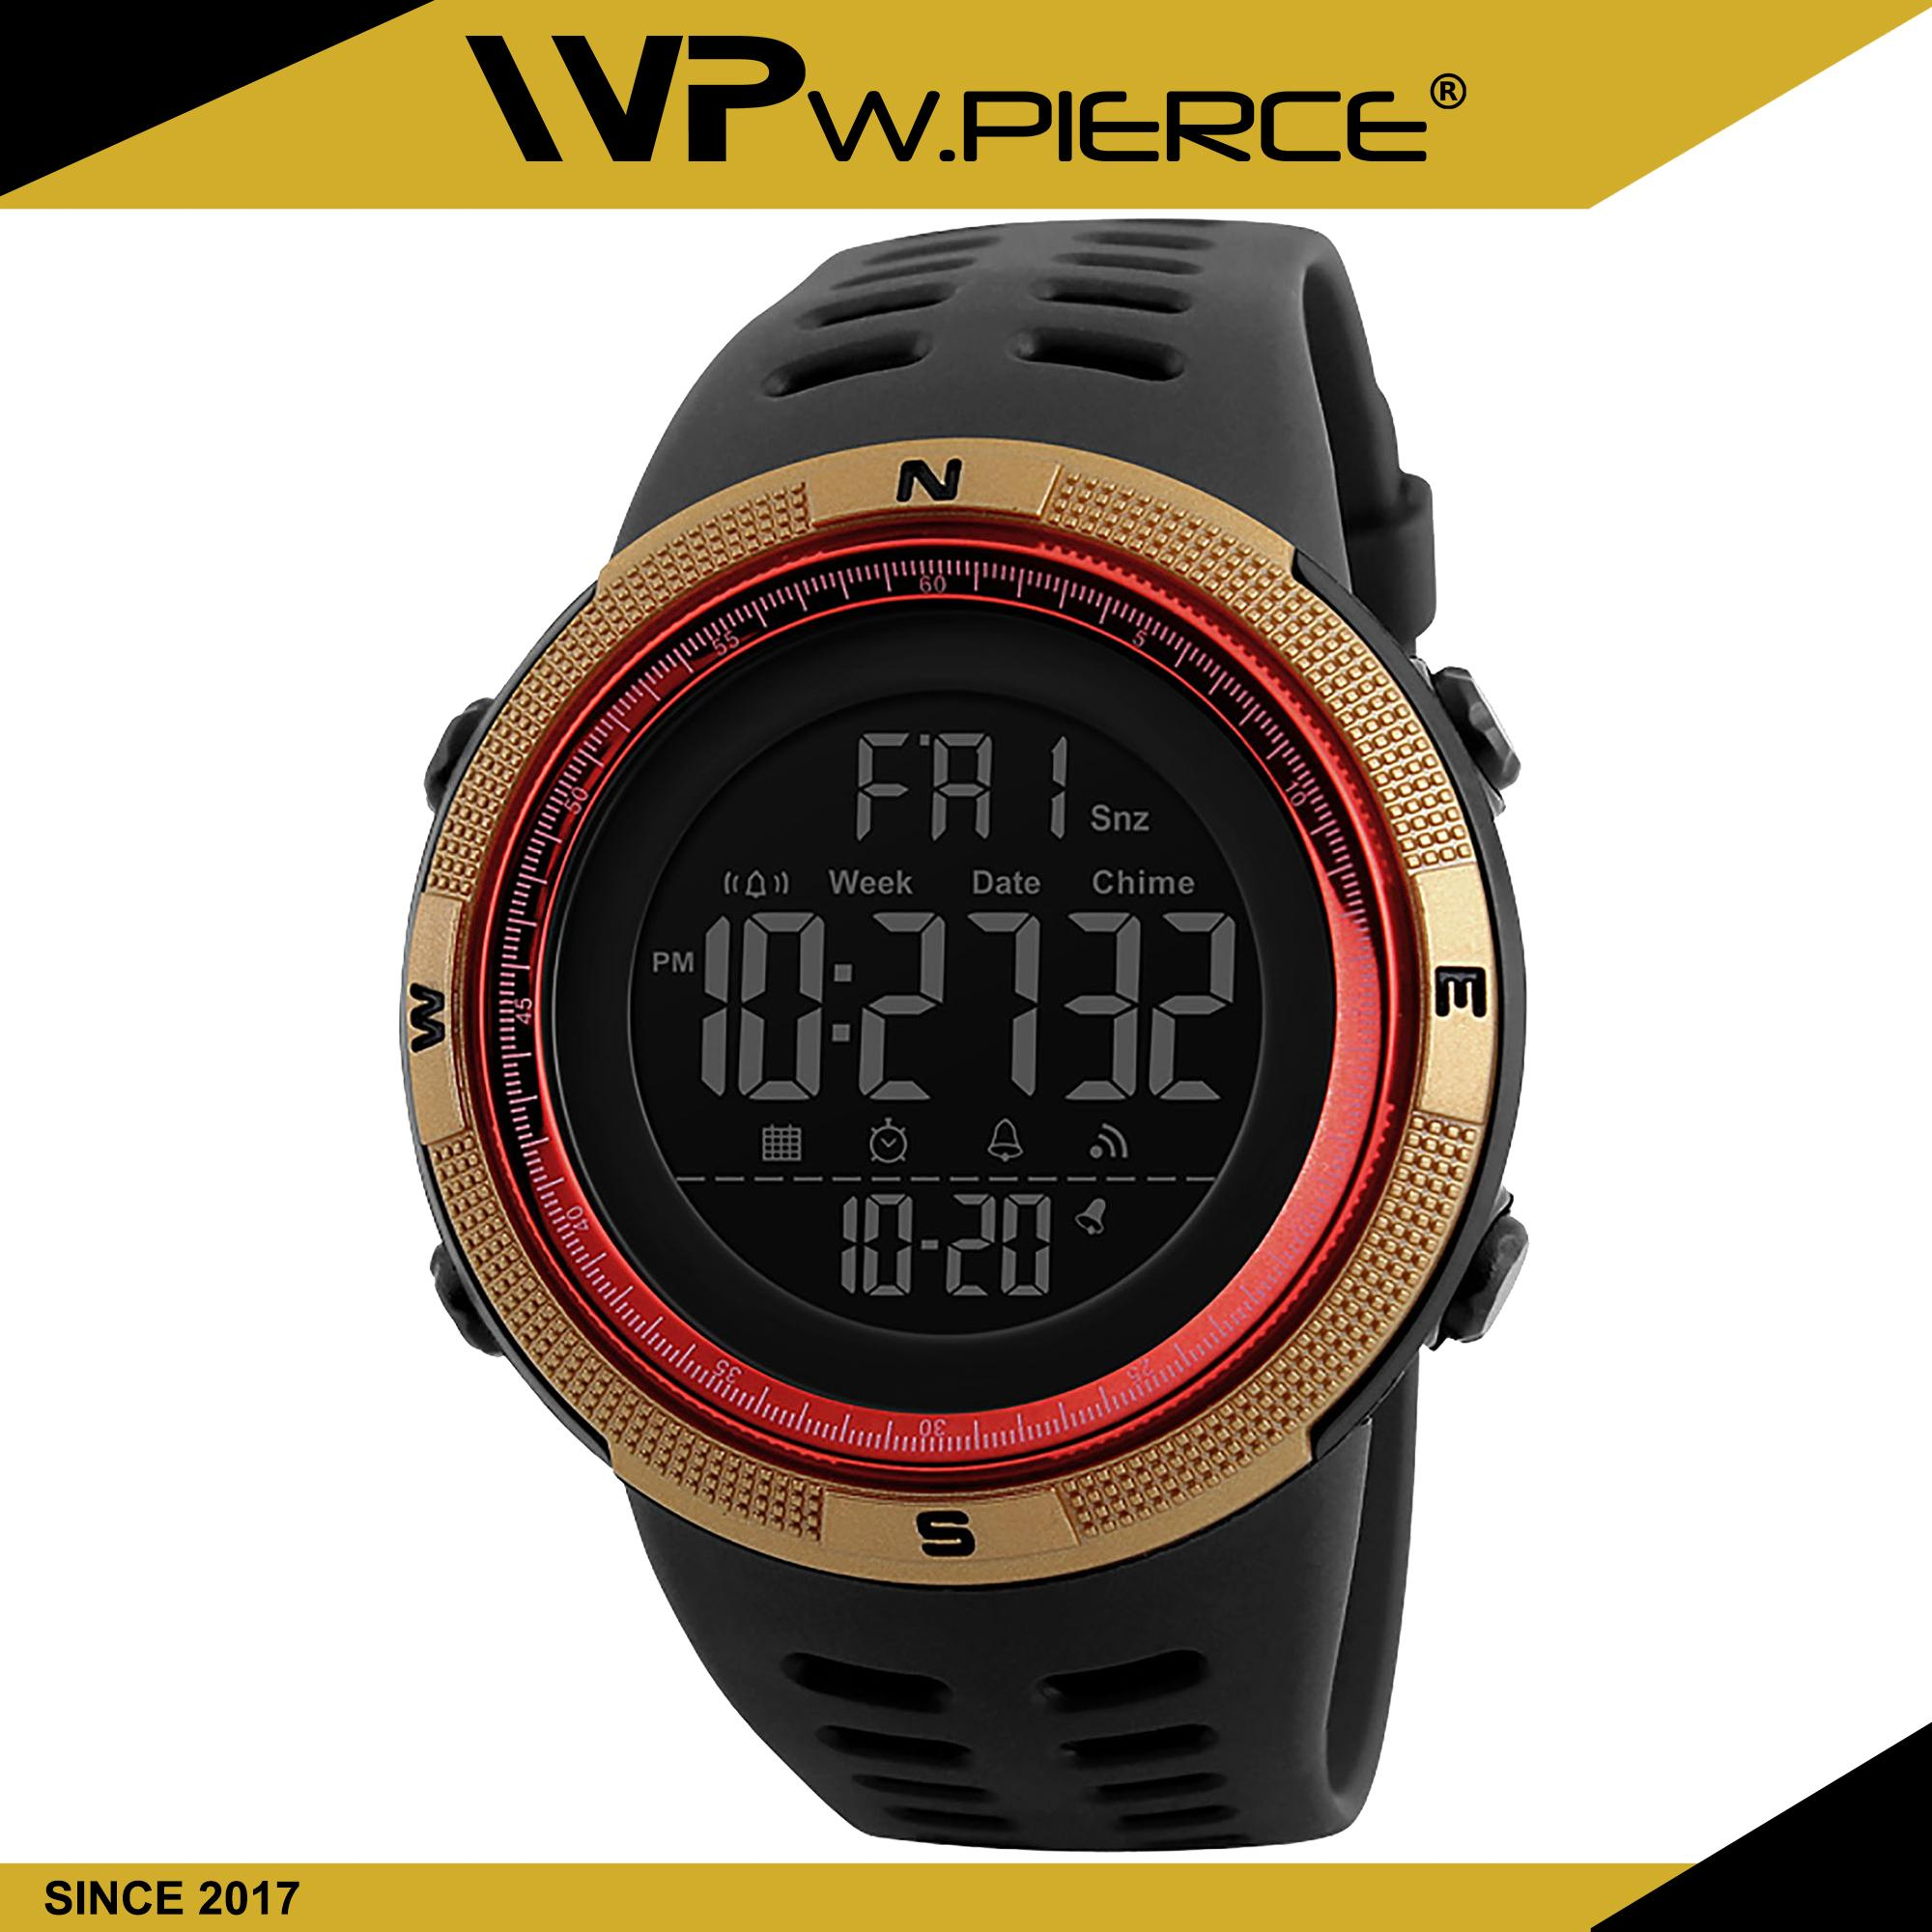 246bcd38f WPierce 1251 Men Sports Watches Countdown Double Time Watch Alarm Chrono  Digital Wristwatches 50M Waterproof Relogio